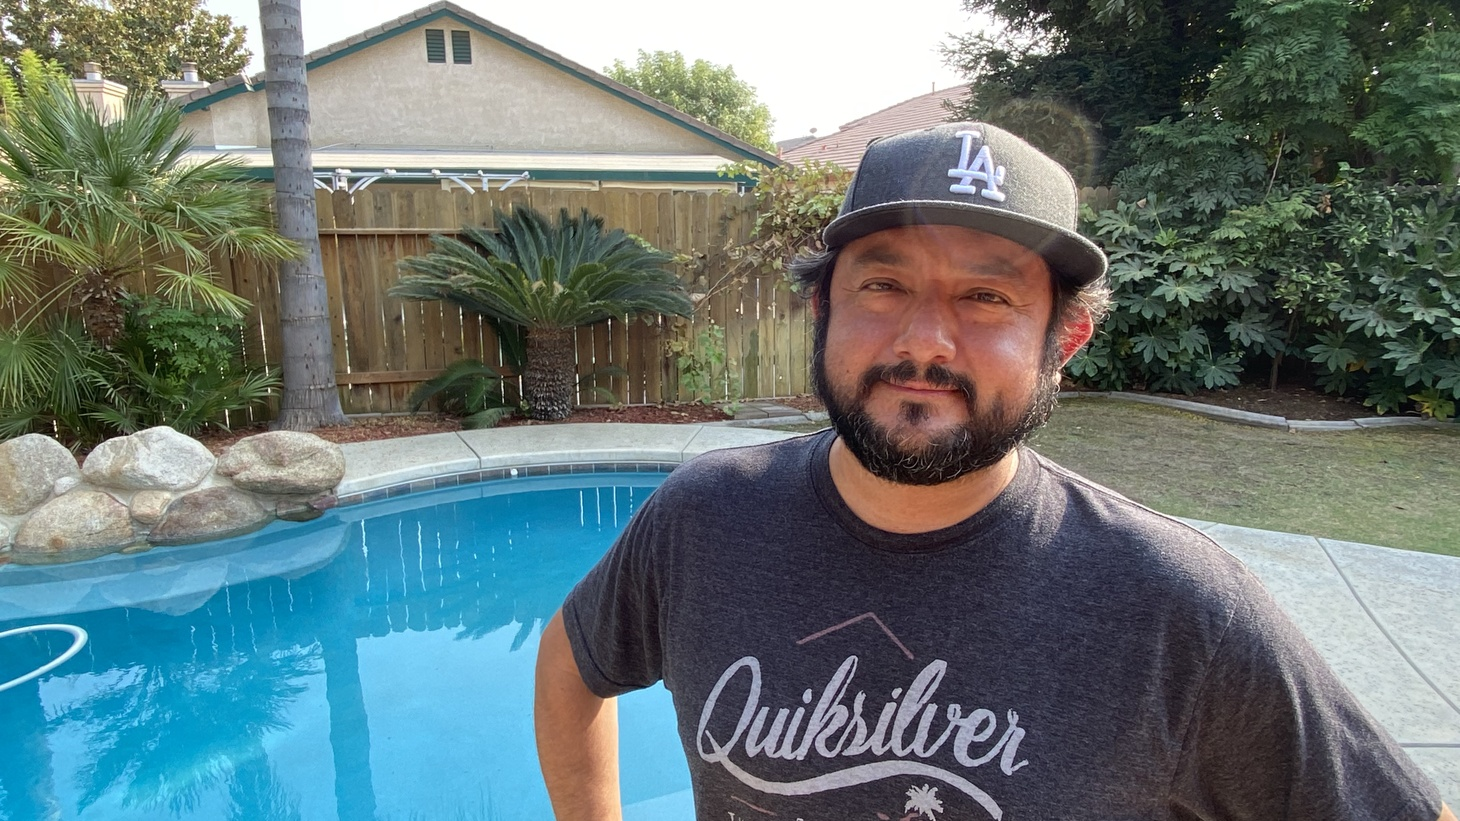 Eliott Motta is a 40-something, single, warehouse manager born and raised in Los Angeles. He moved to Bakersfield a couple of years ago.